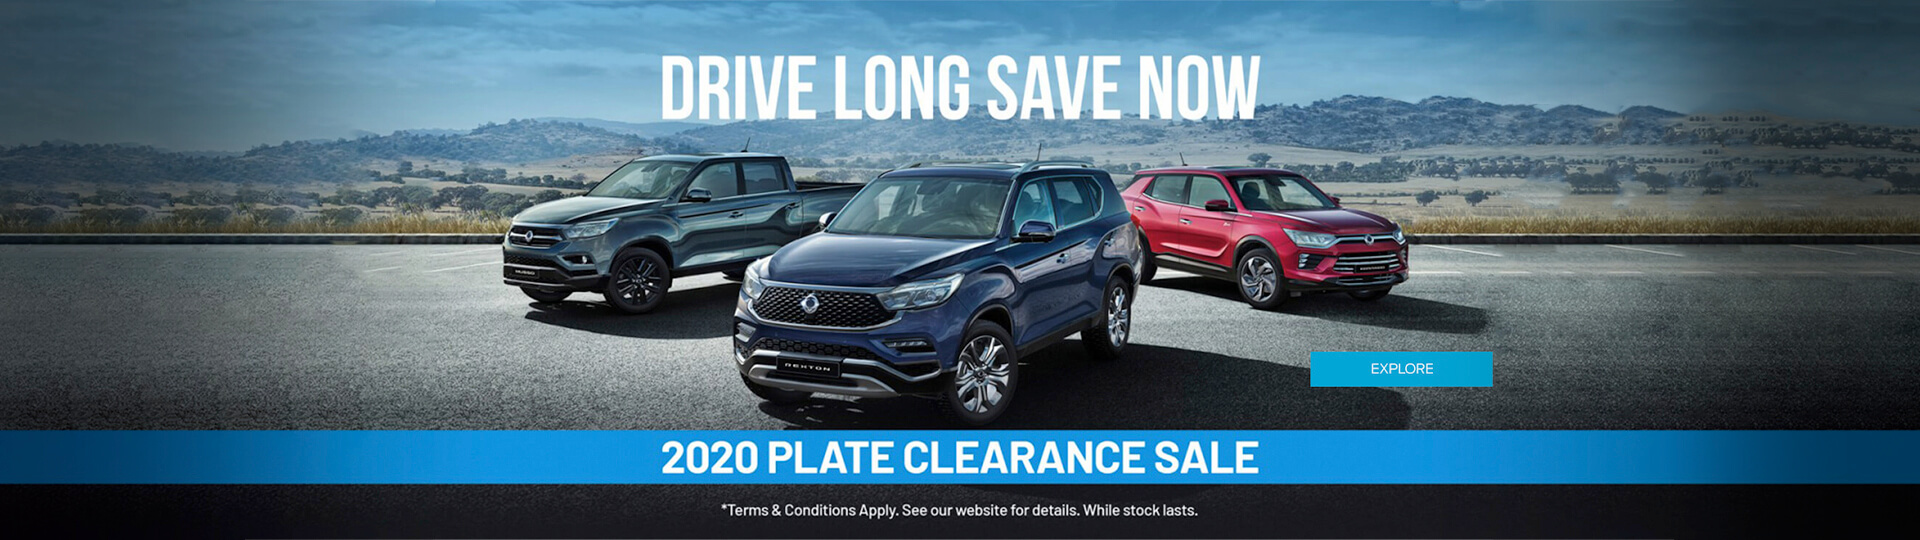 SsangYong - Drive Long. Save Now. 2020 Plate Clearance Sale